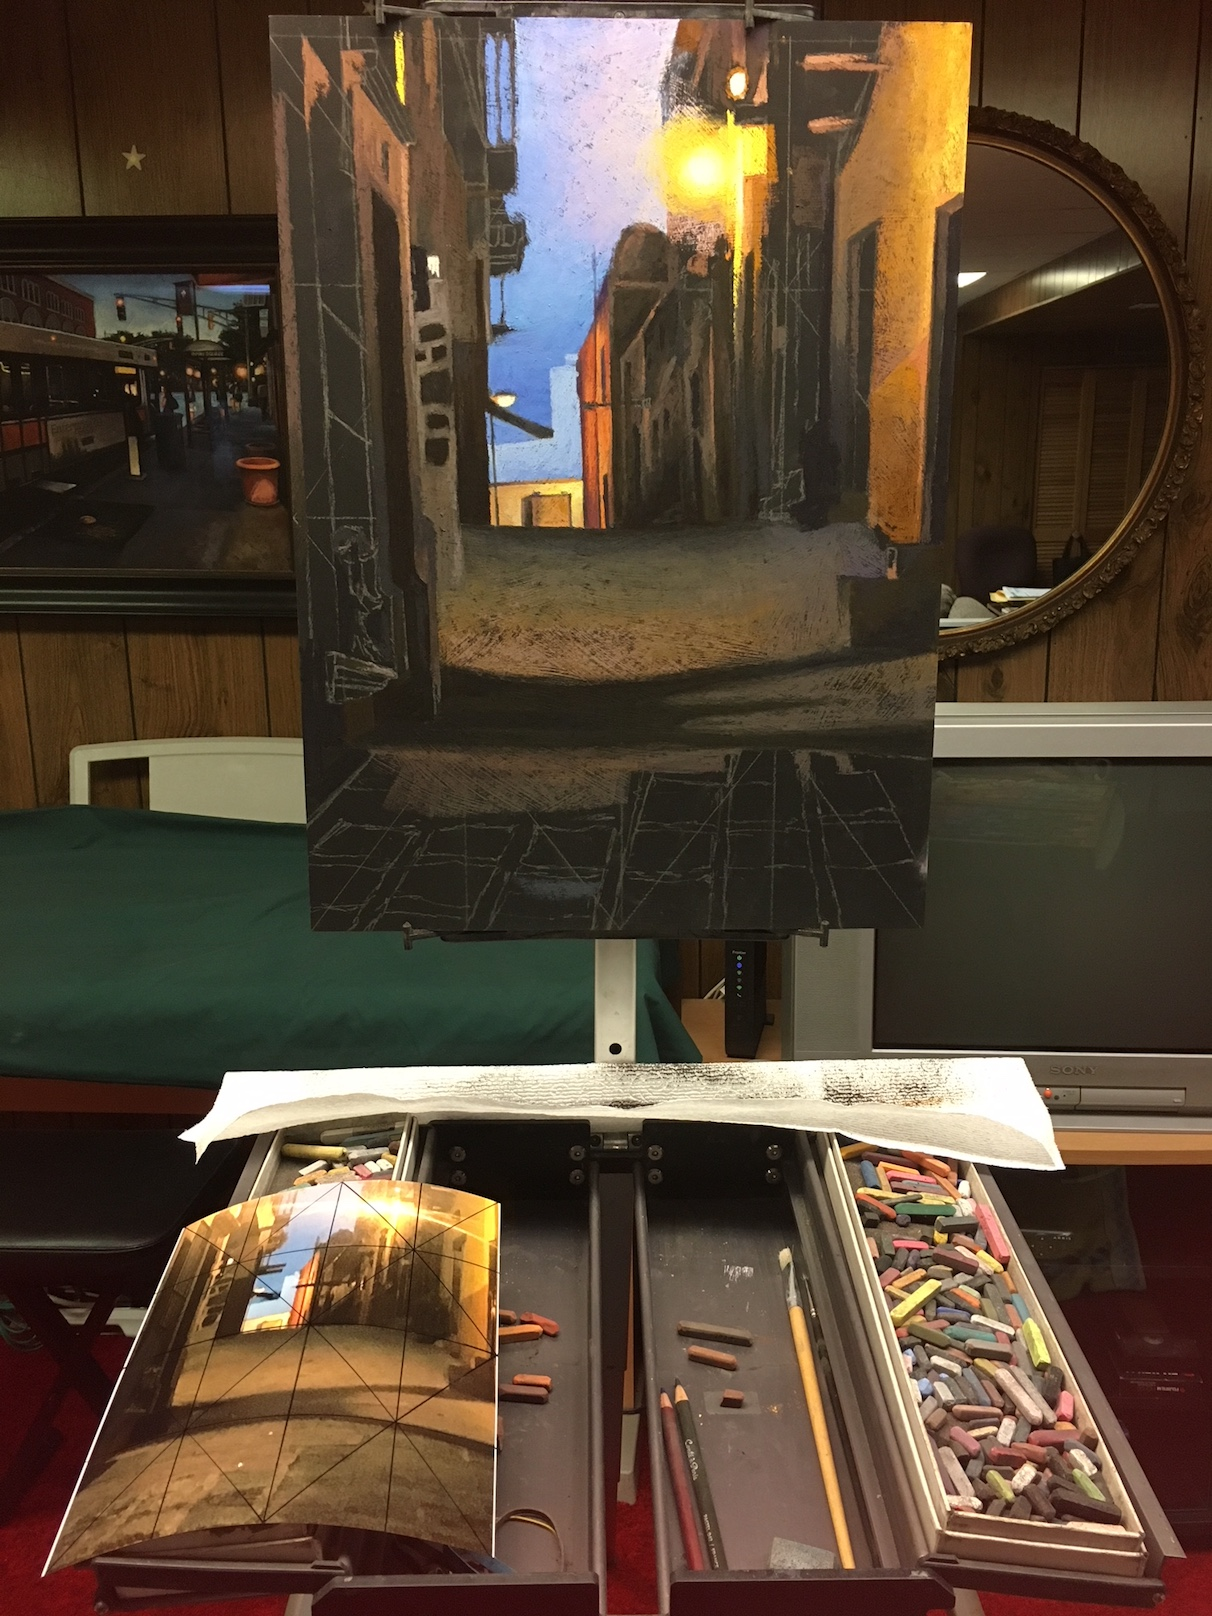 Chris Iver studio: Work in progress with palette and reference photo